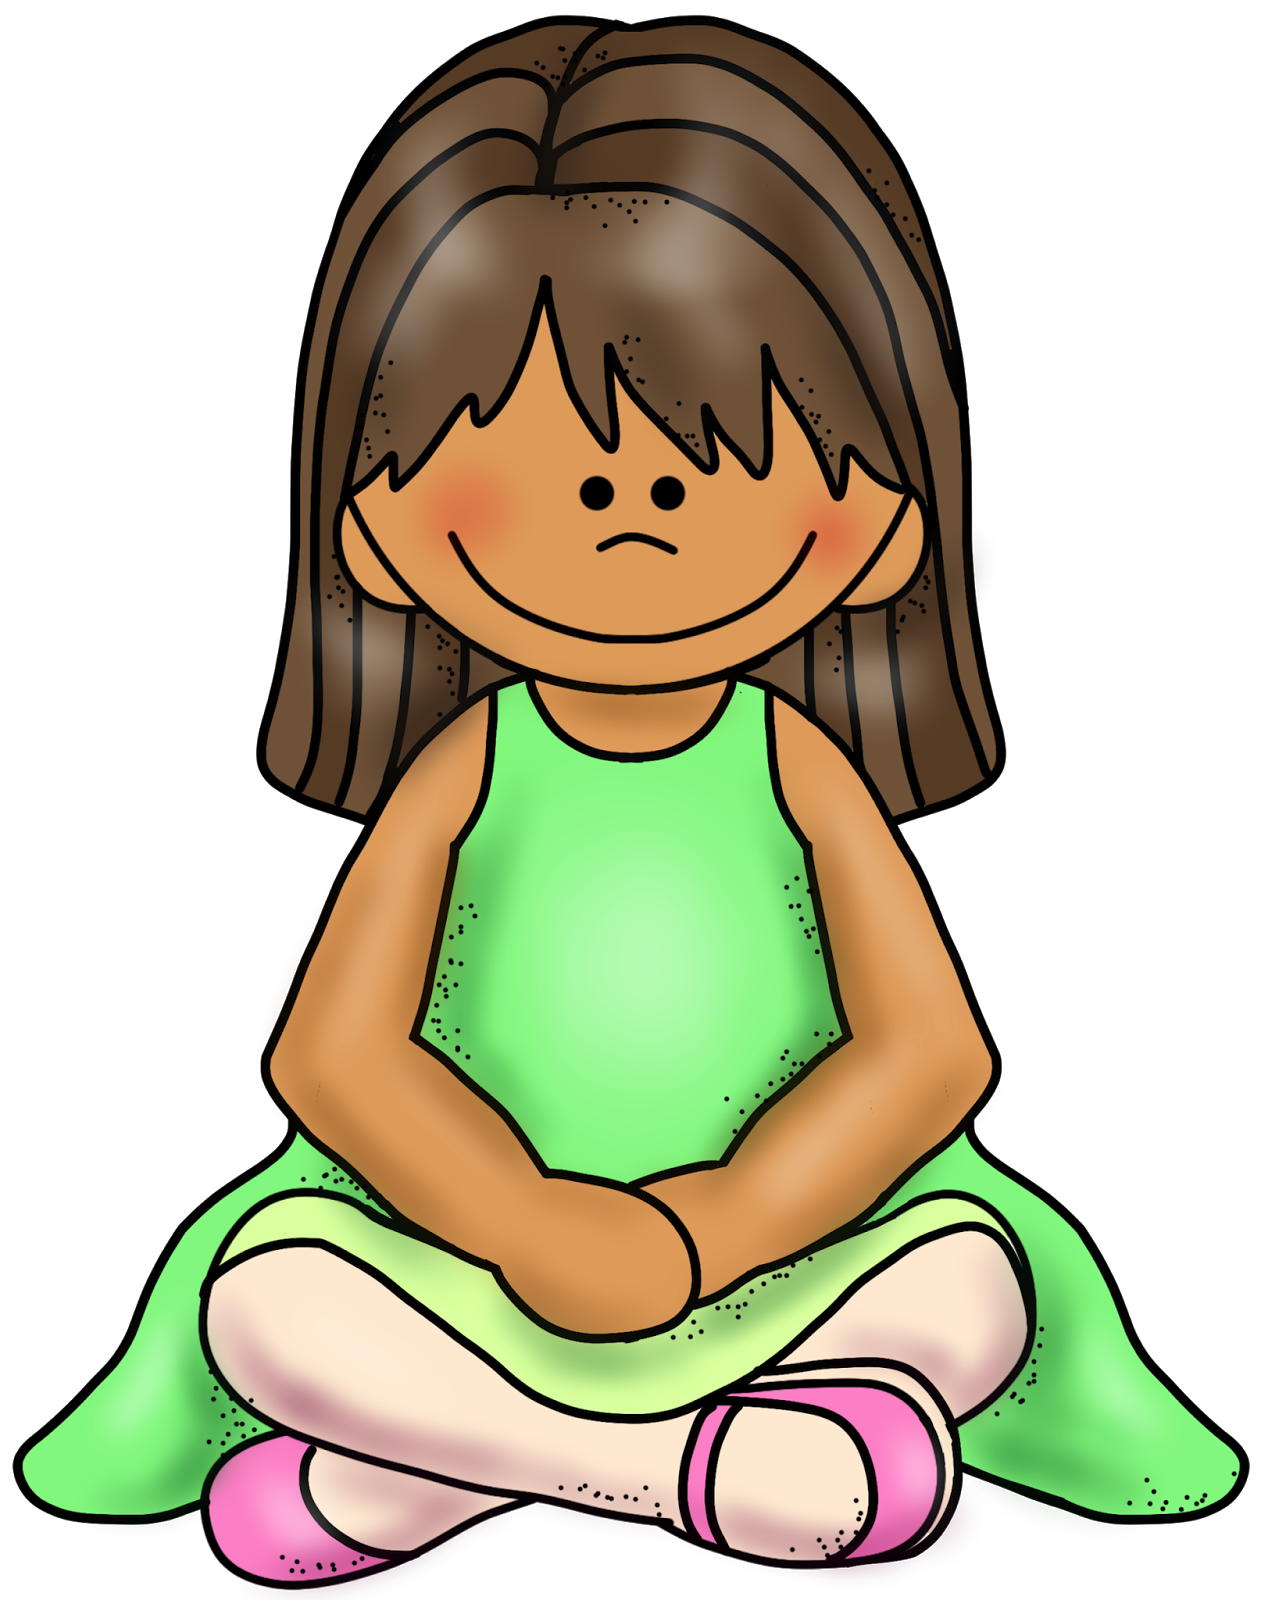 medium resolution of sitting criss cross applesauce clipart